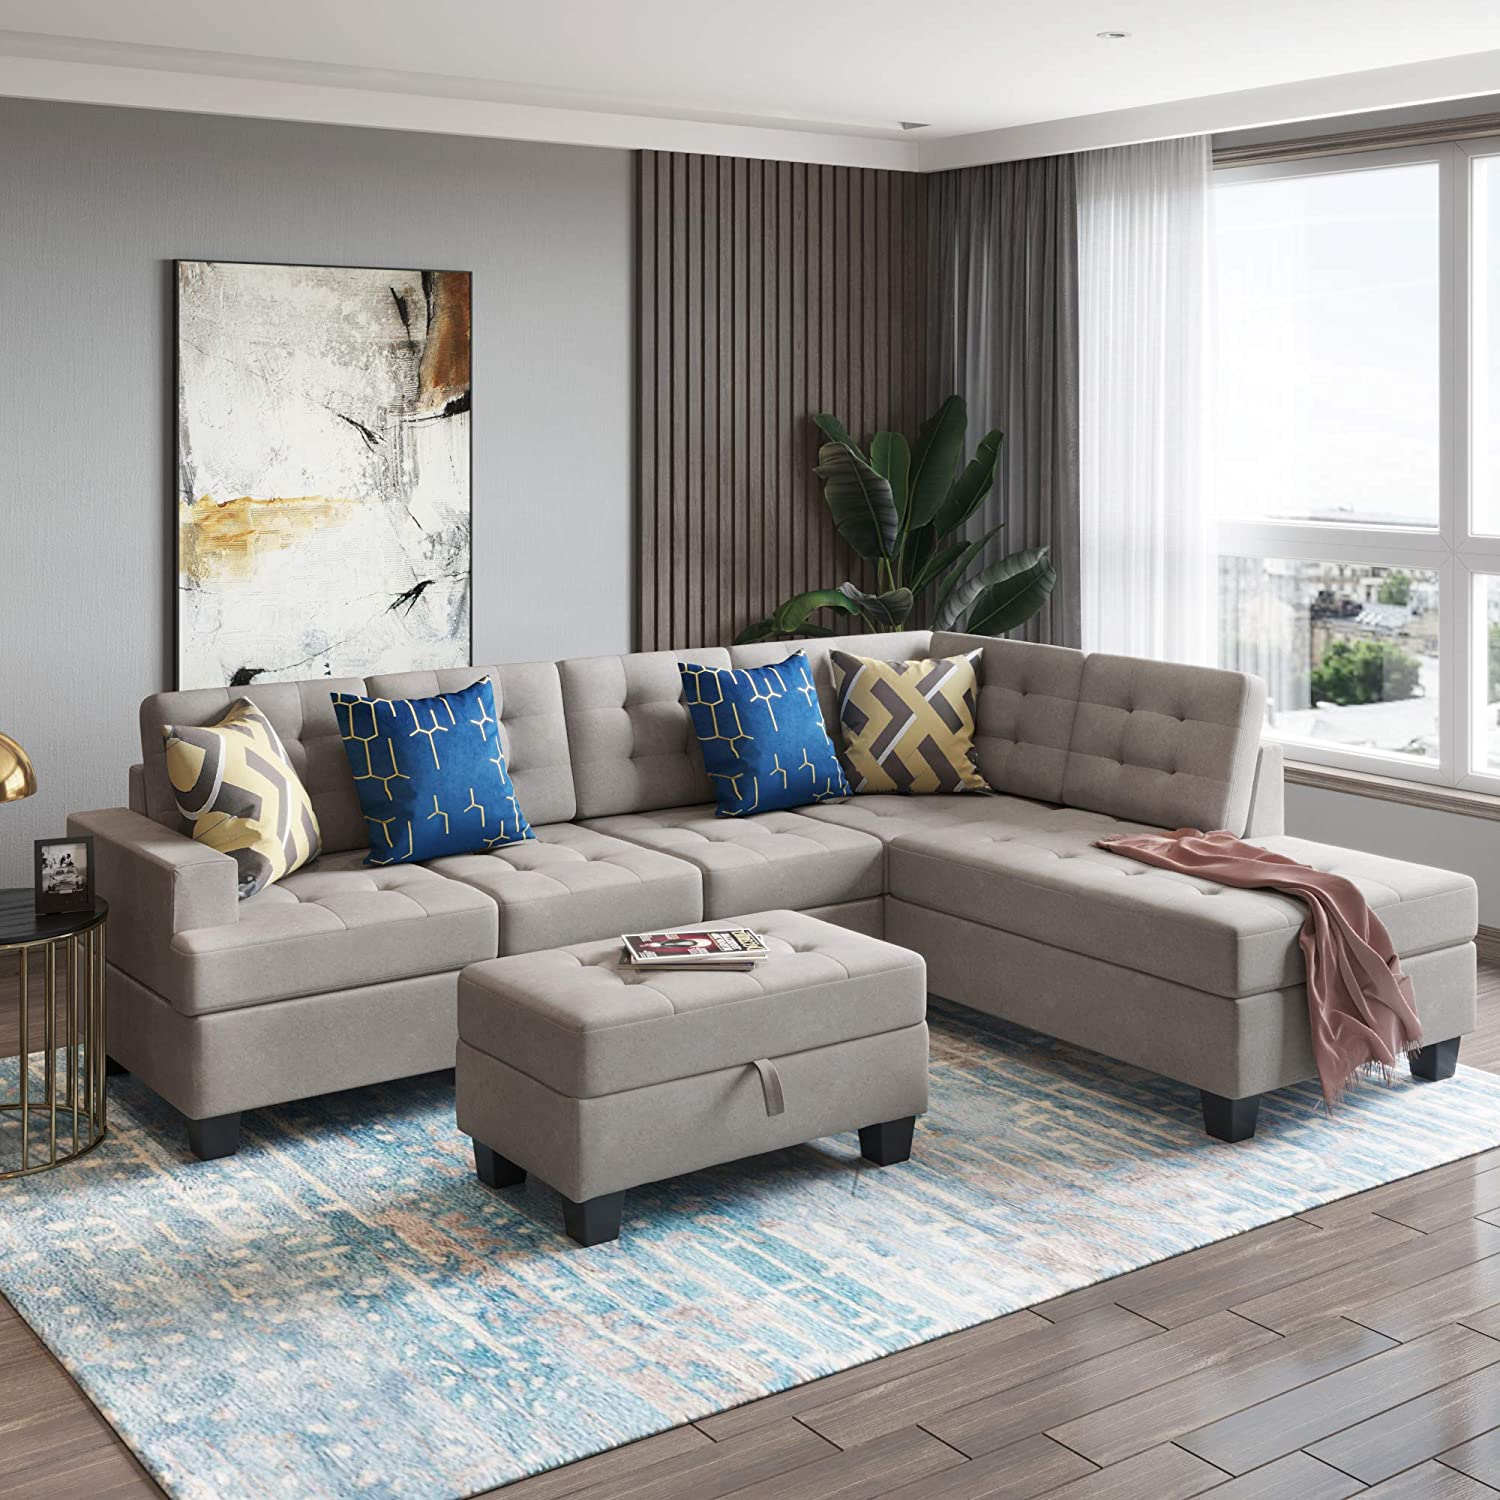 Merax Sectional Sofa Set With, Living Room Furniture Chaise Lounge